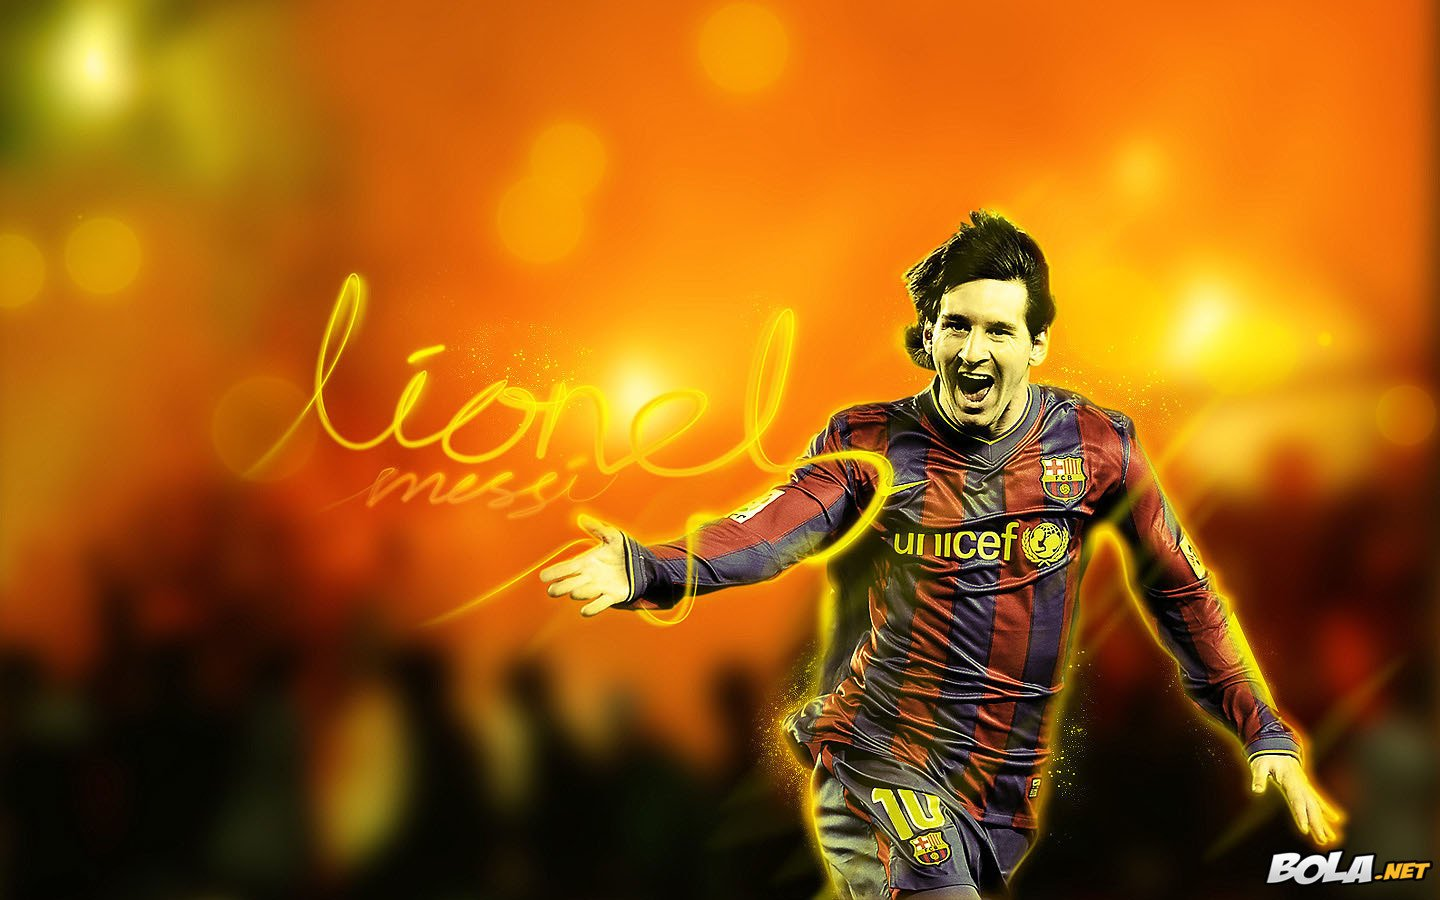 Success Quotes Hd Wallpapers 1080p Messi Desktop Background Free Download Pixelstalk Net